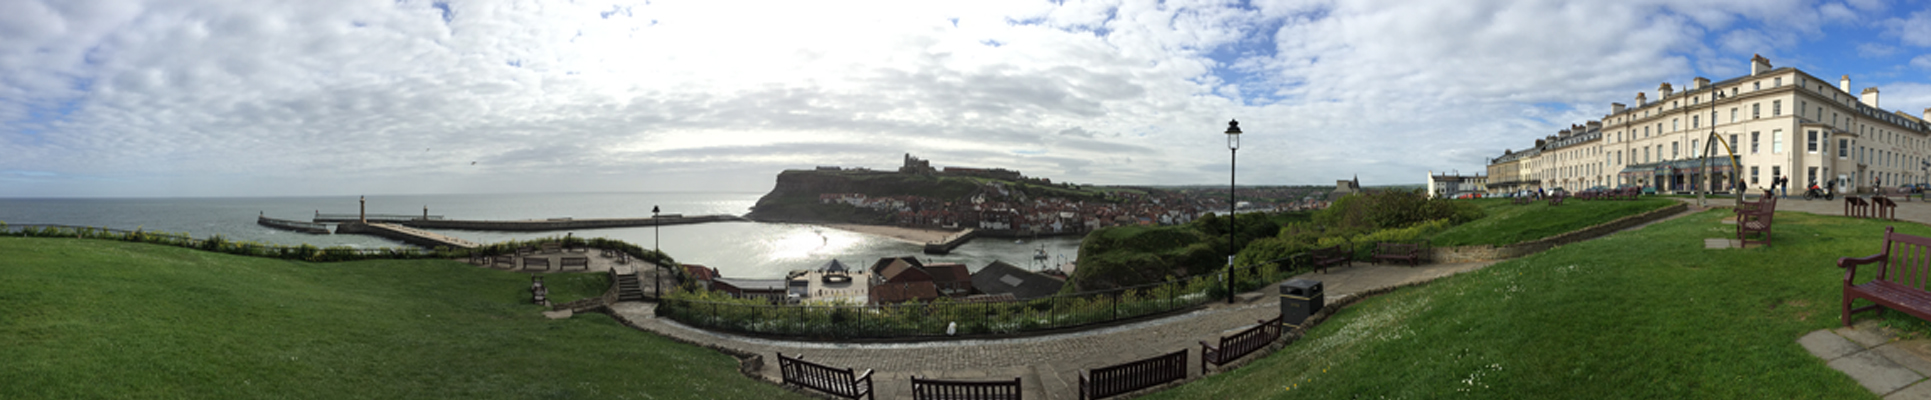 abbotsleigh-of-whitby-slider-big